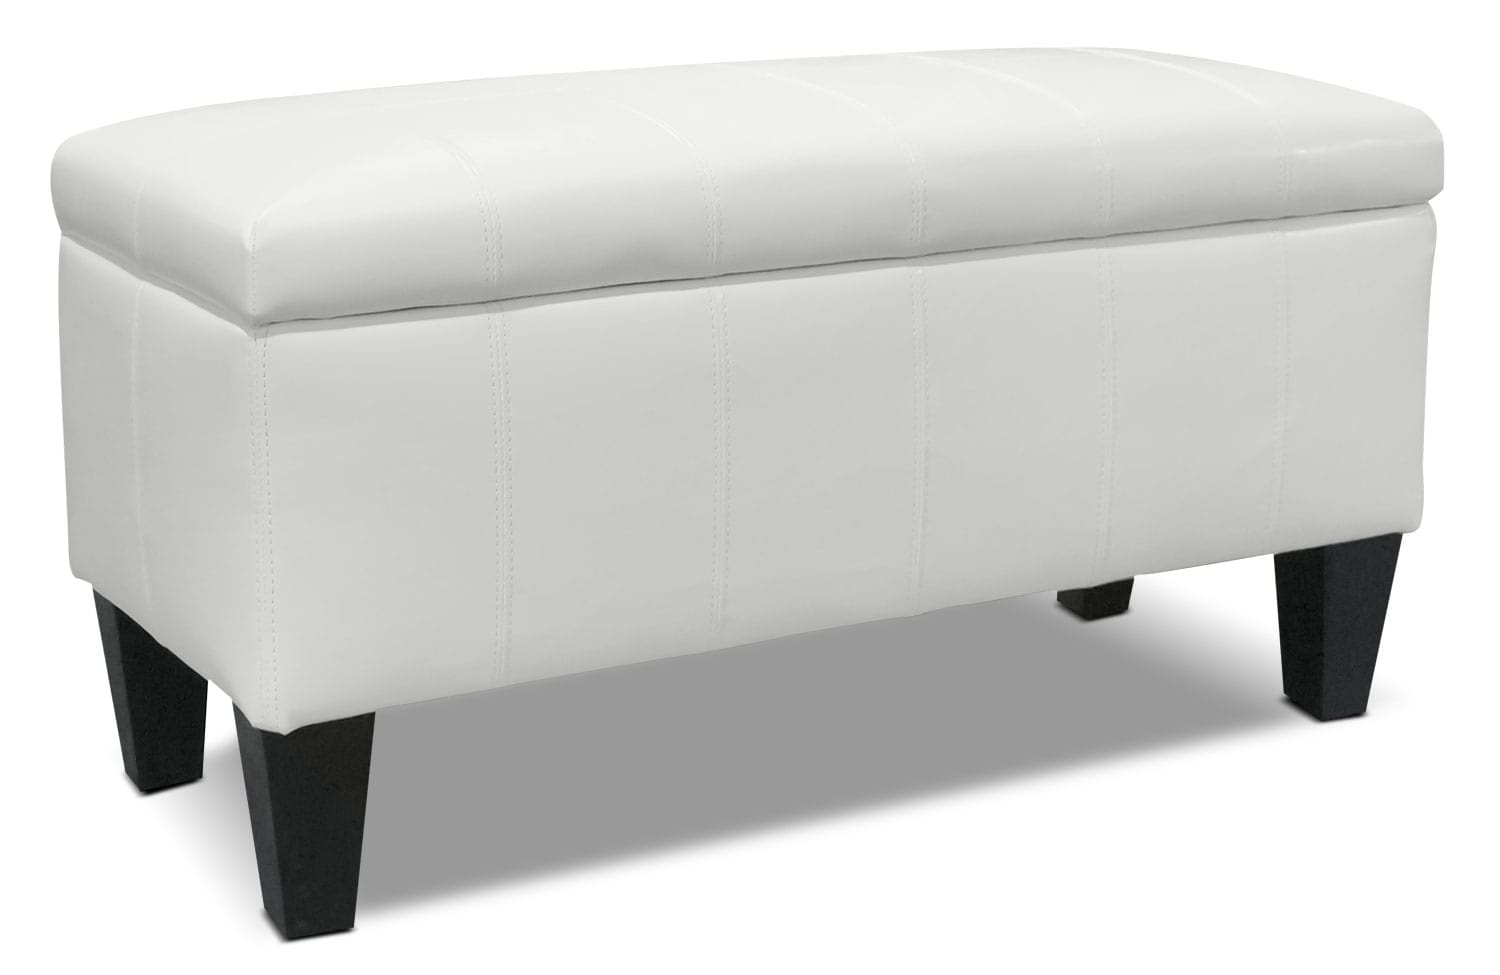 Living Room Furniture - Jackson Storage Ottoman - White